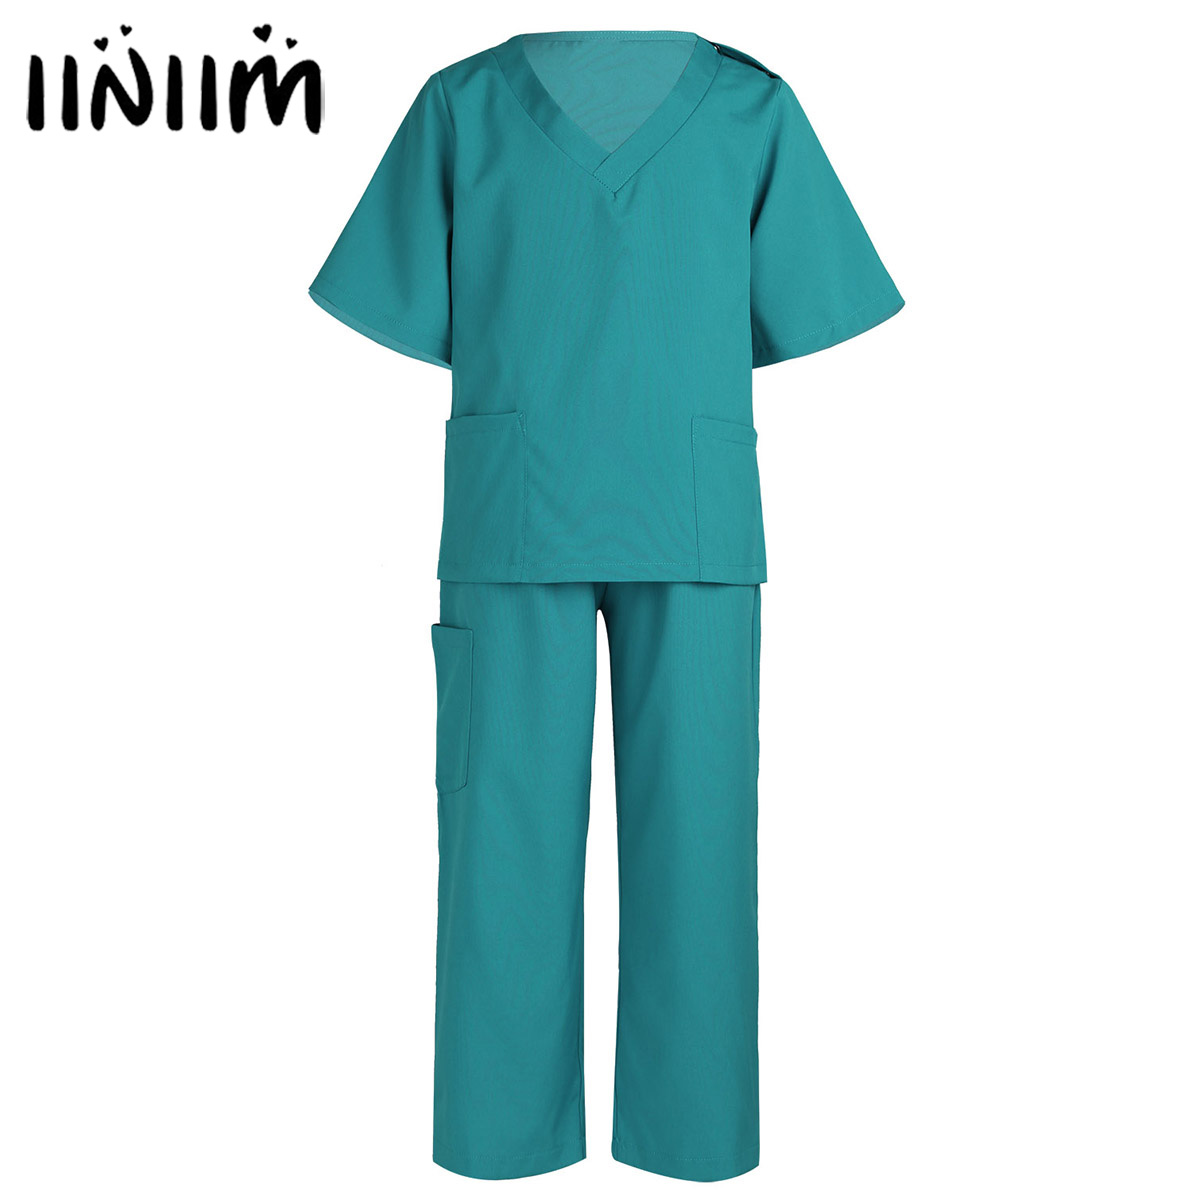 Unisex Kids Boys Girls Surgeon Doctor Costume Tops with Pants Cap Set for Halloween Cosplay Fancy Party Dress Up for Children